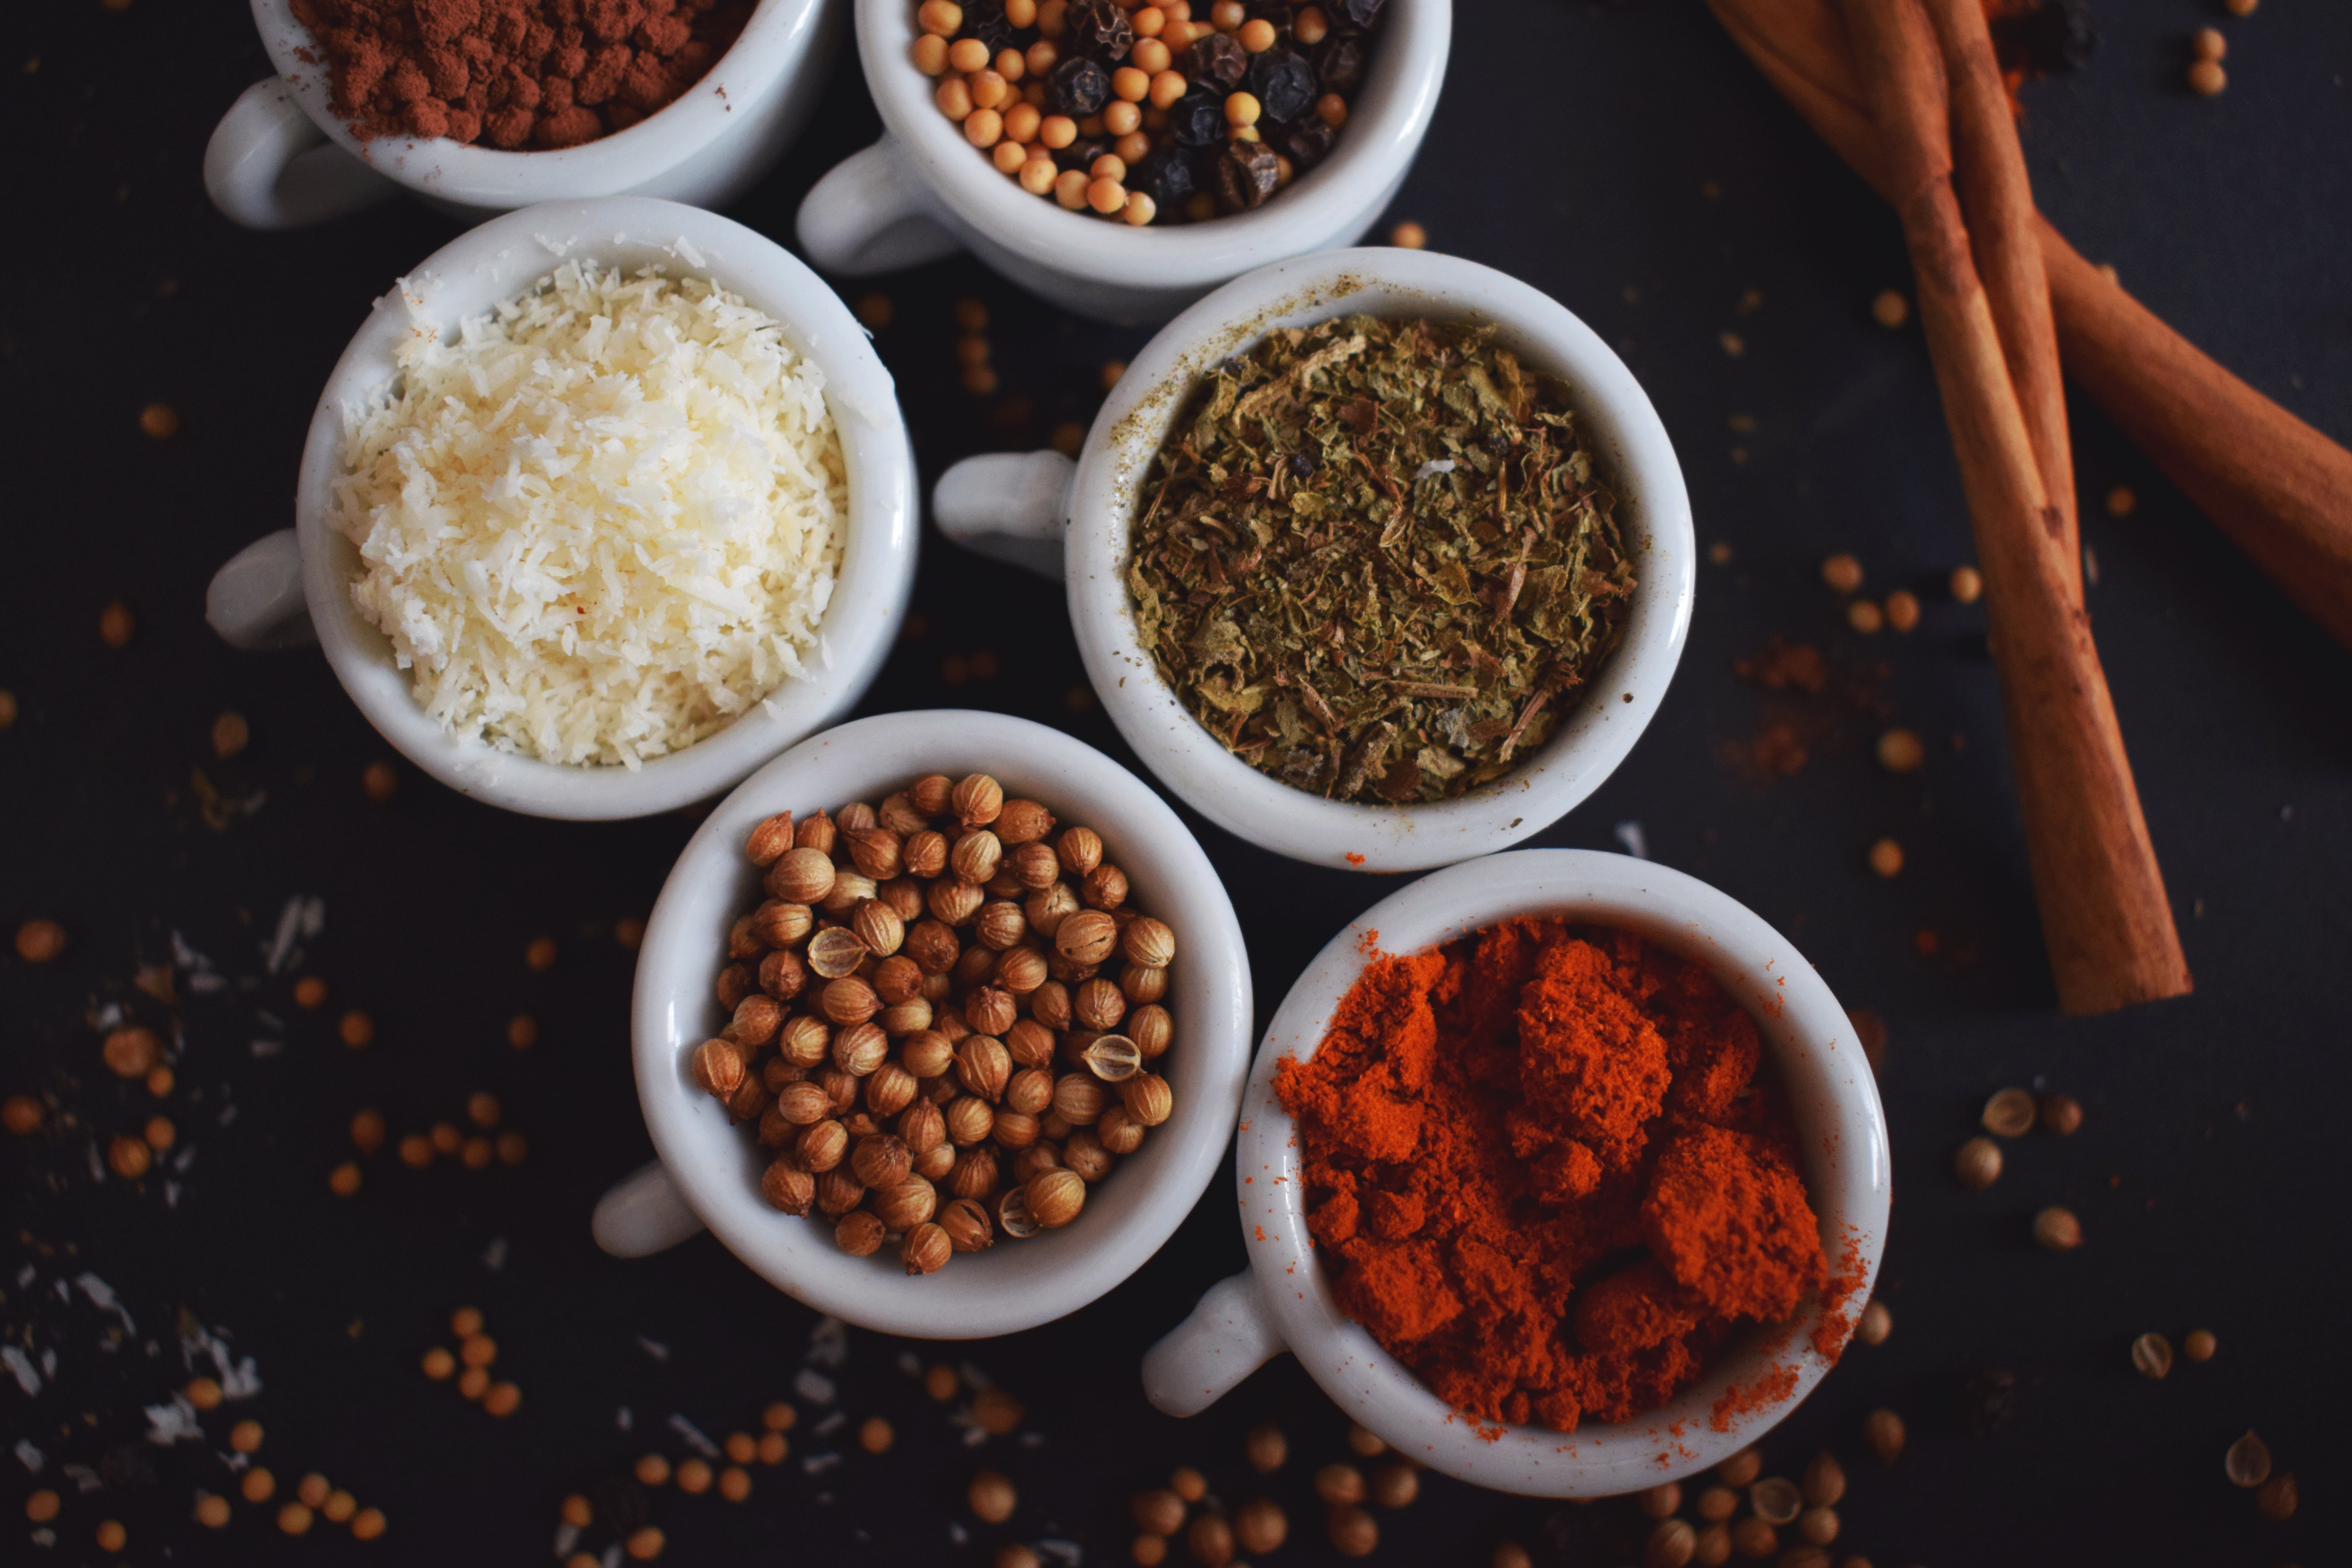 Herbs And Spices For Health And To Spice Up Vegan Cooking